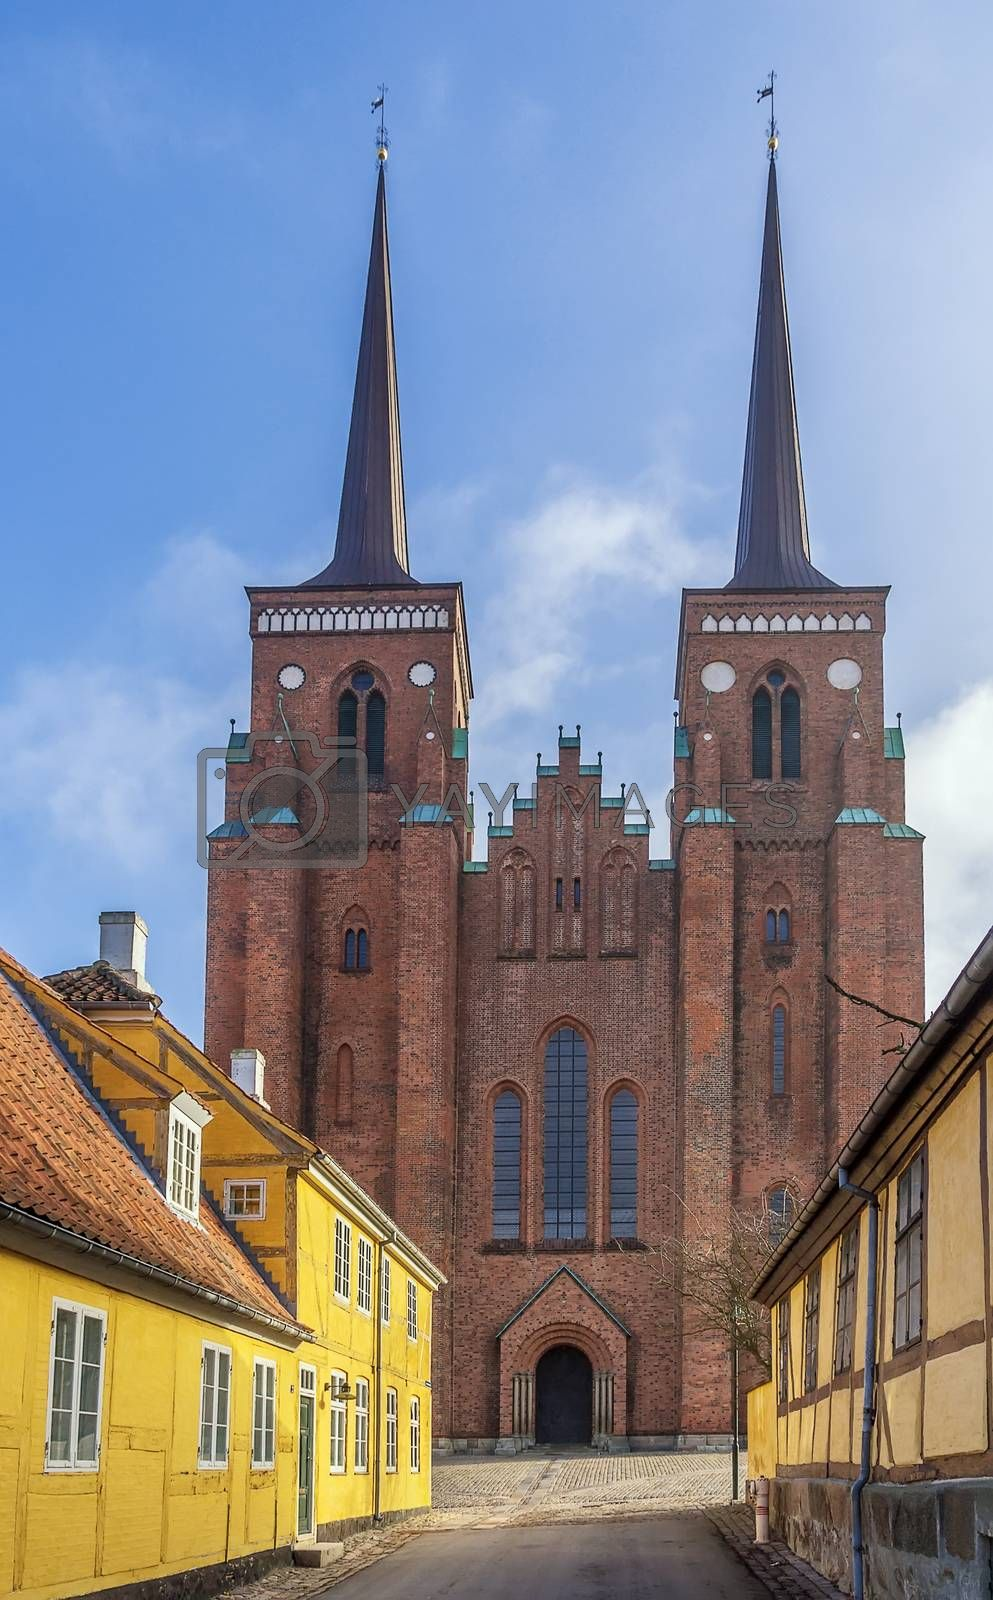 Roskilde Cathedral, Denmark by borisb17